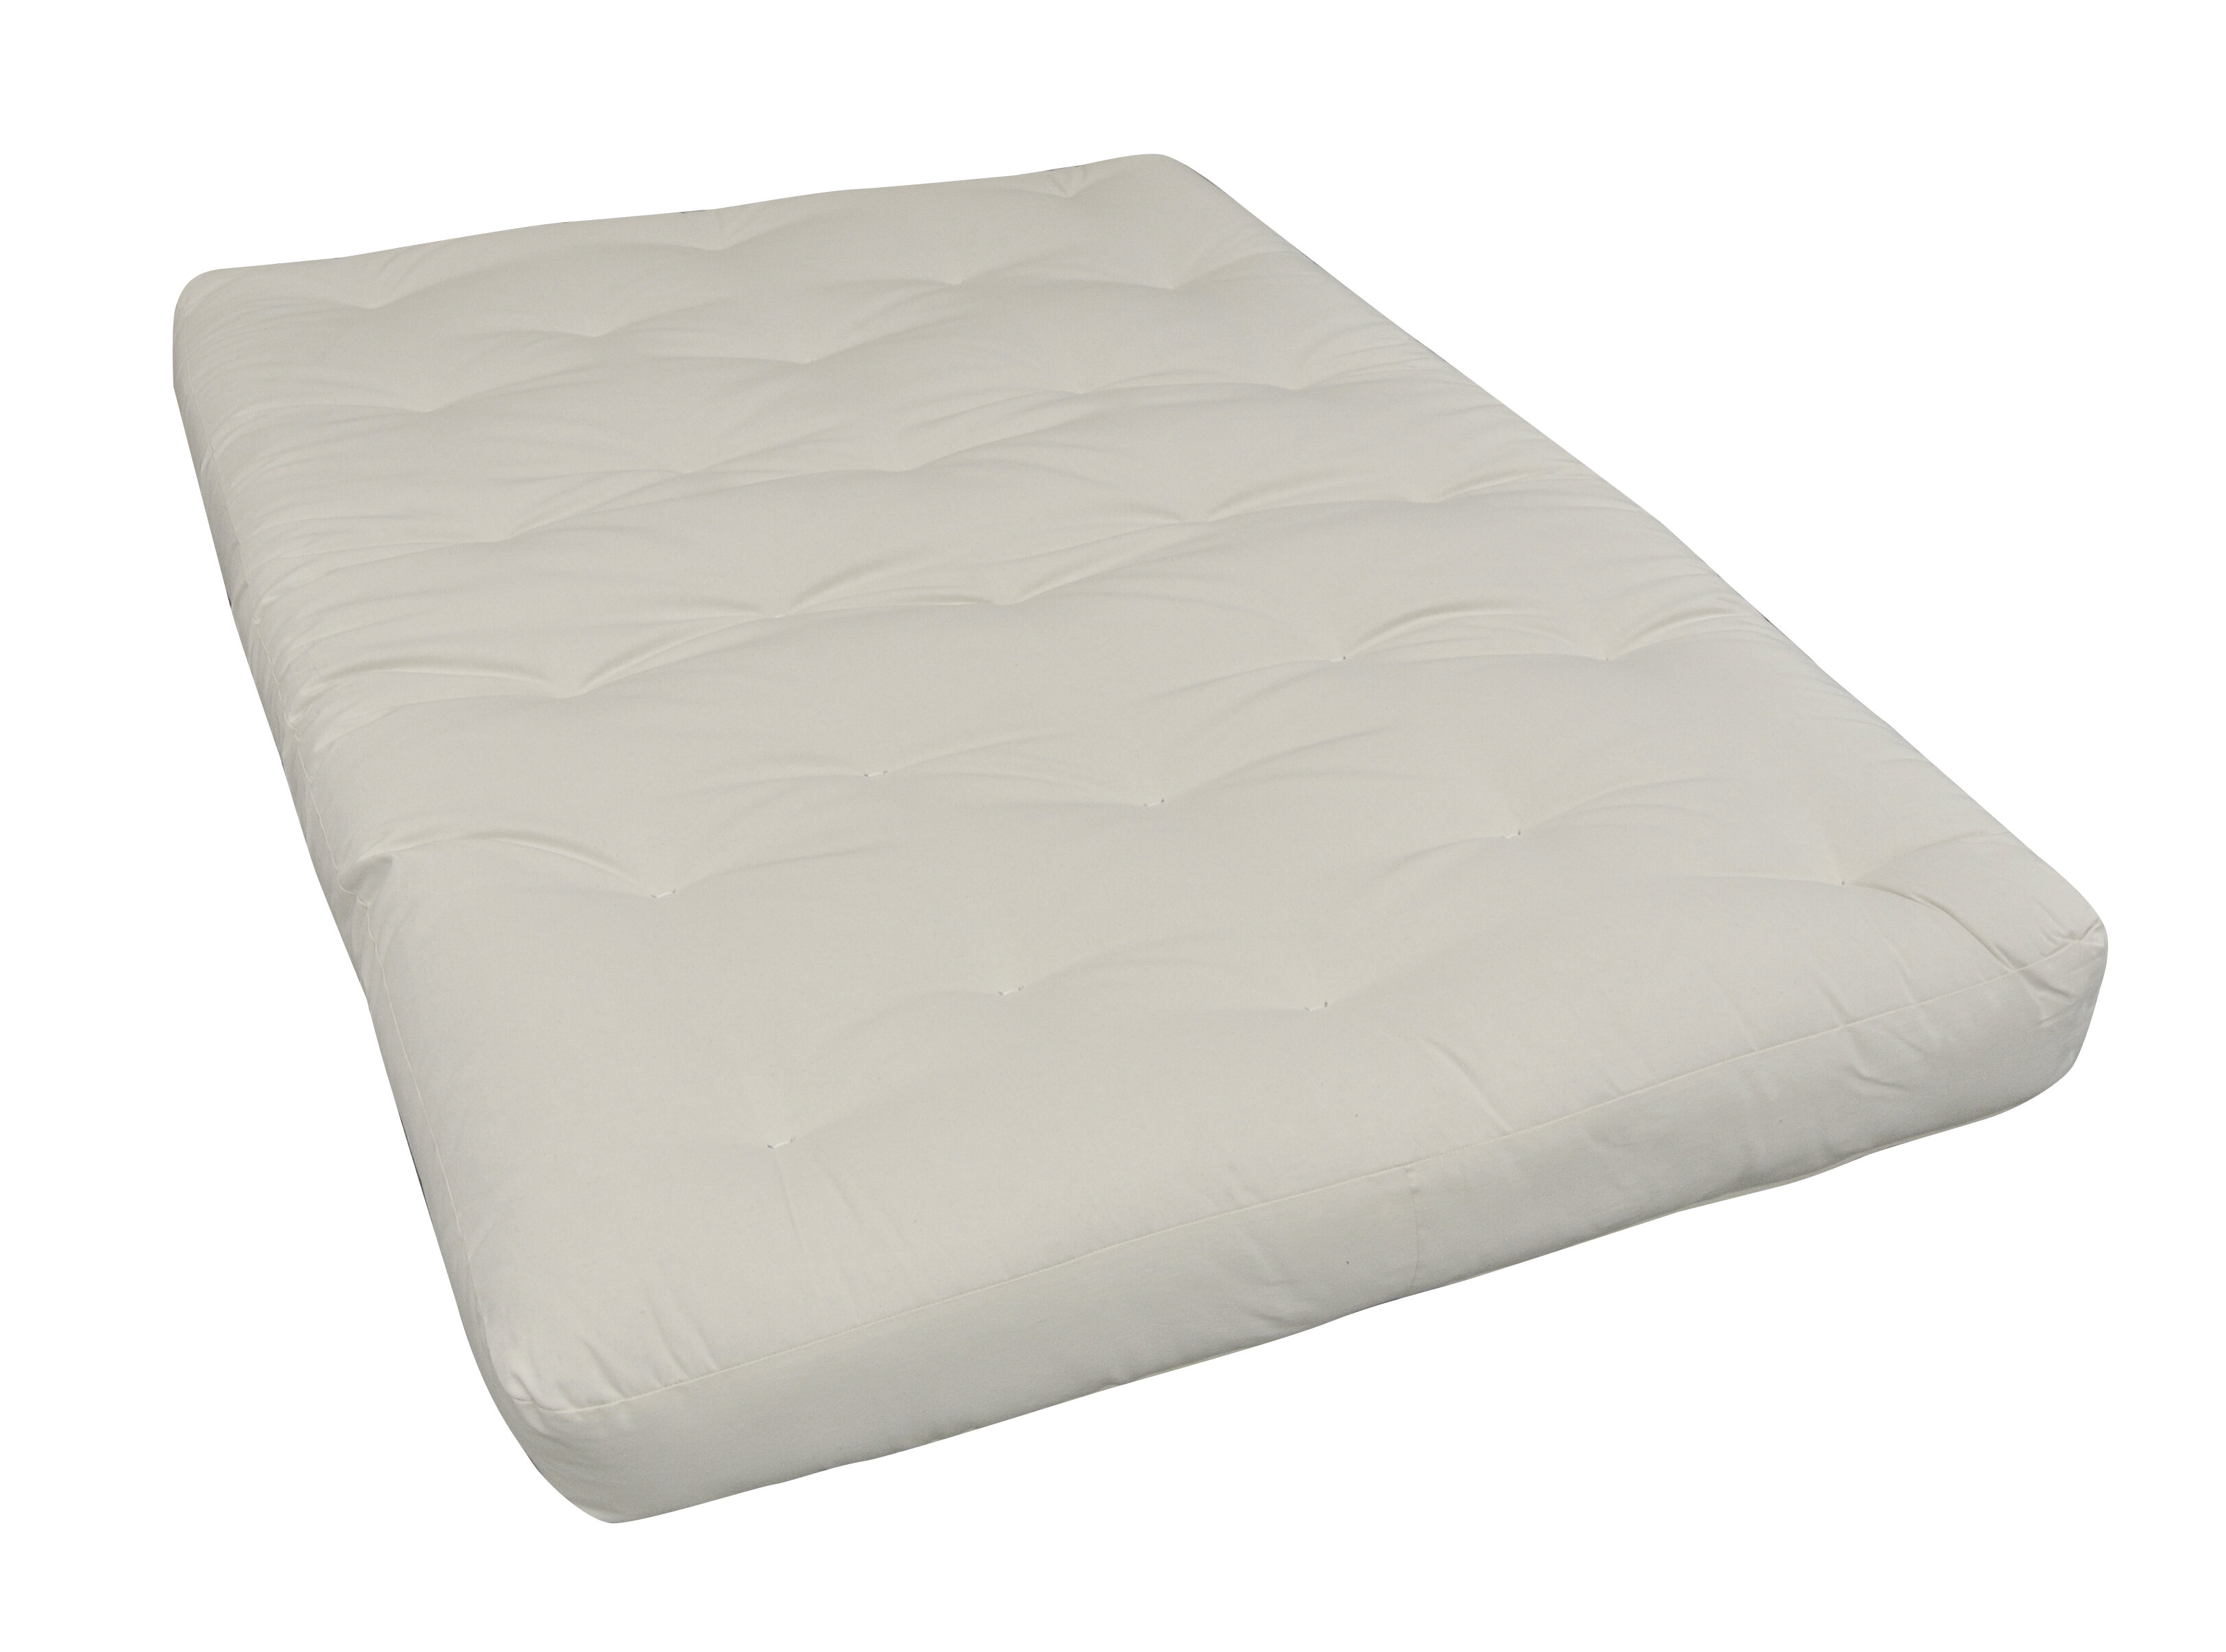 Gold Bond Memory Foam Futon Mattress